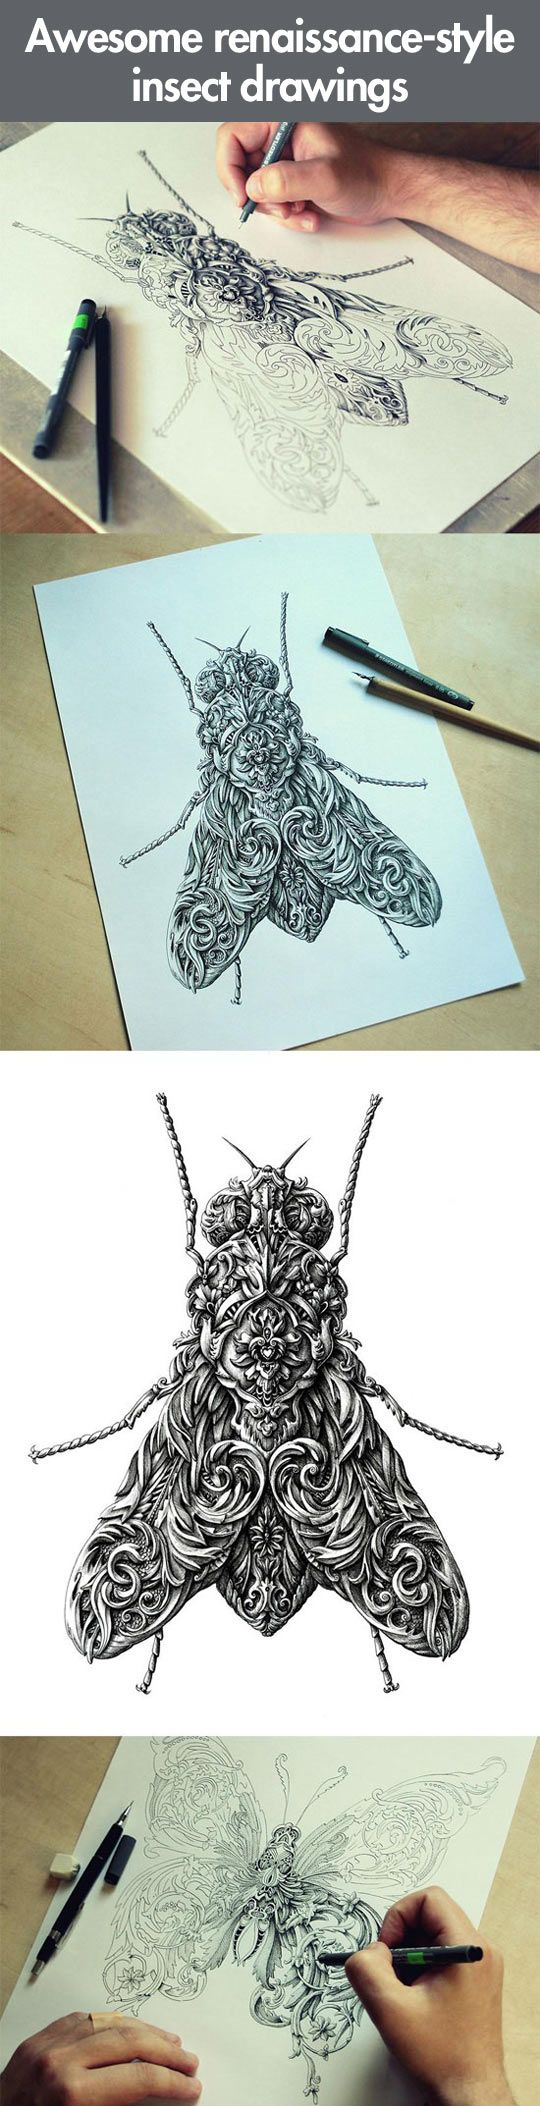 Renaissance-style insect drawings… filling the space with artificial details instead of drawing the object as it appears.